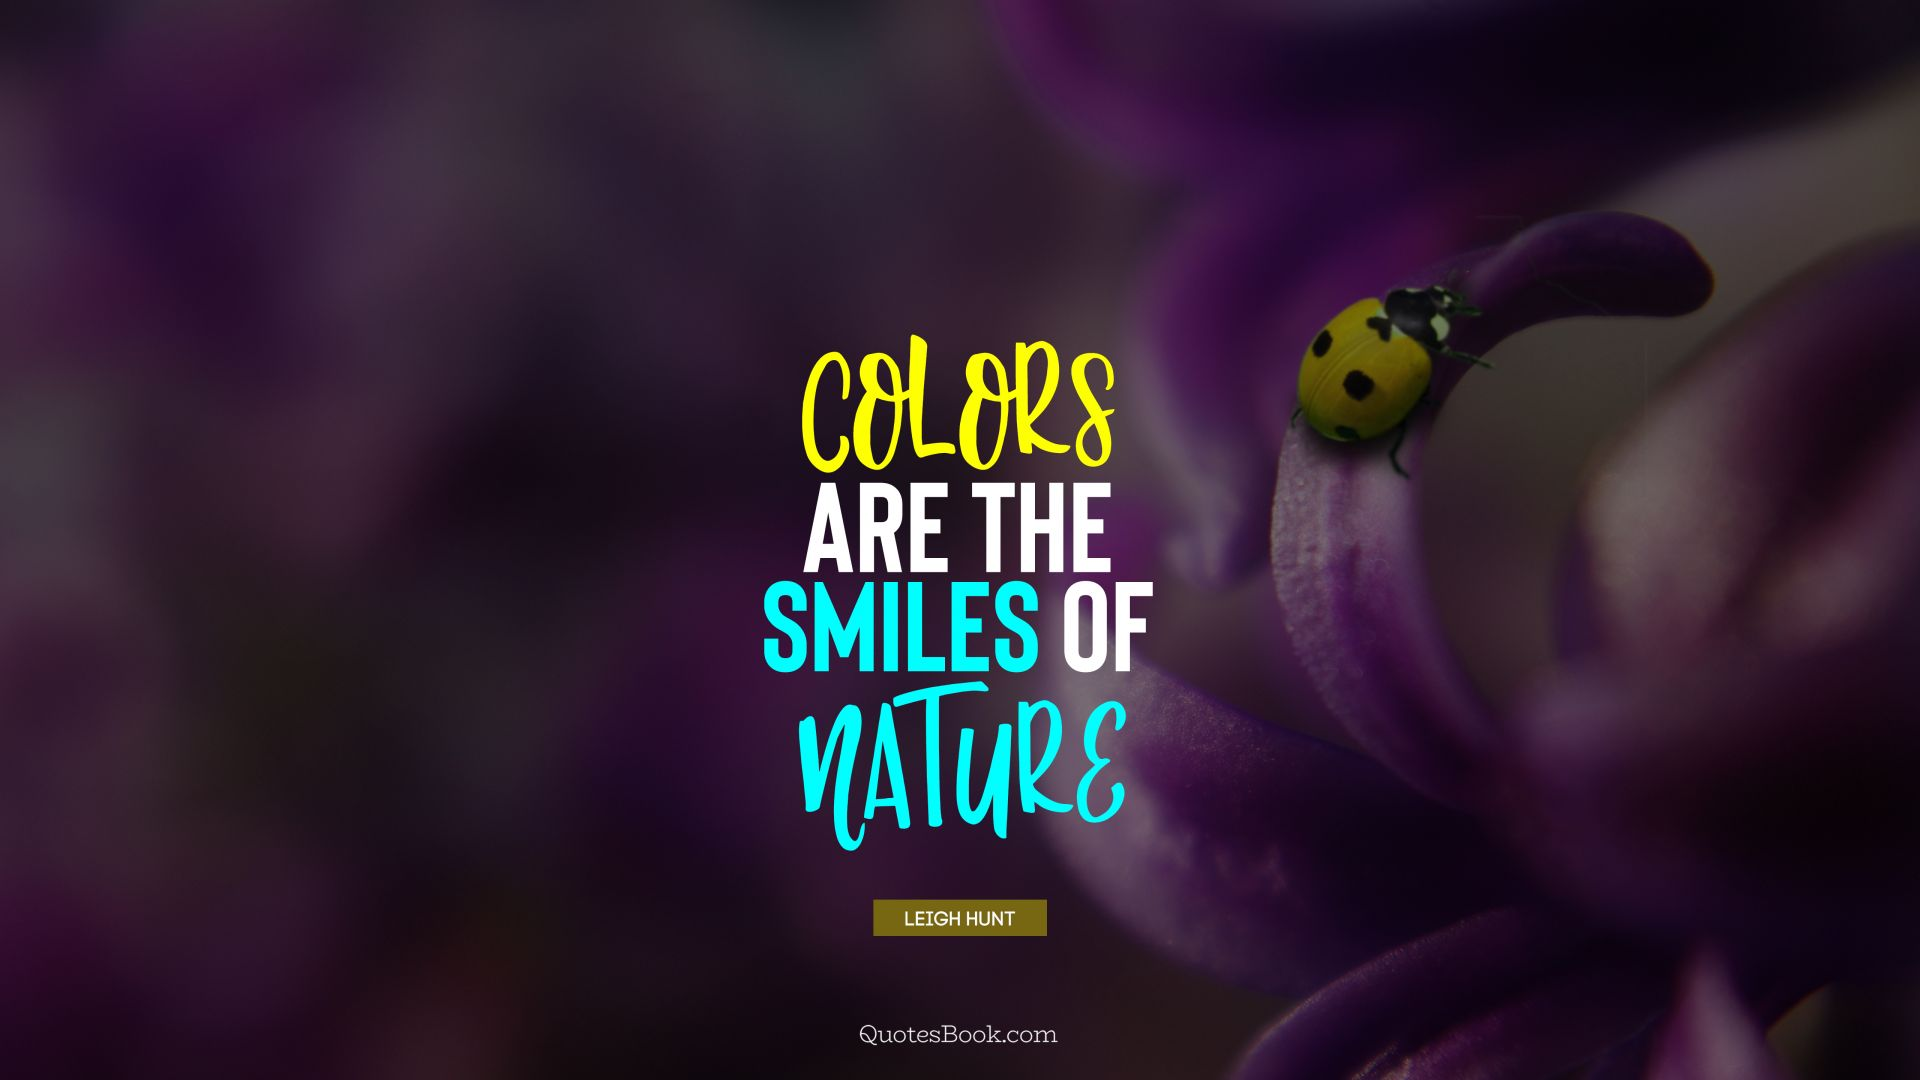 Colors are the smiles of nature. - Quote by Leigh Hunt